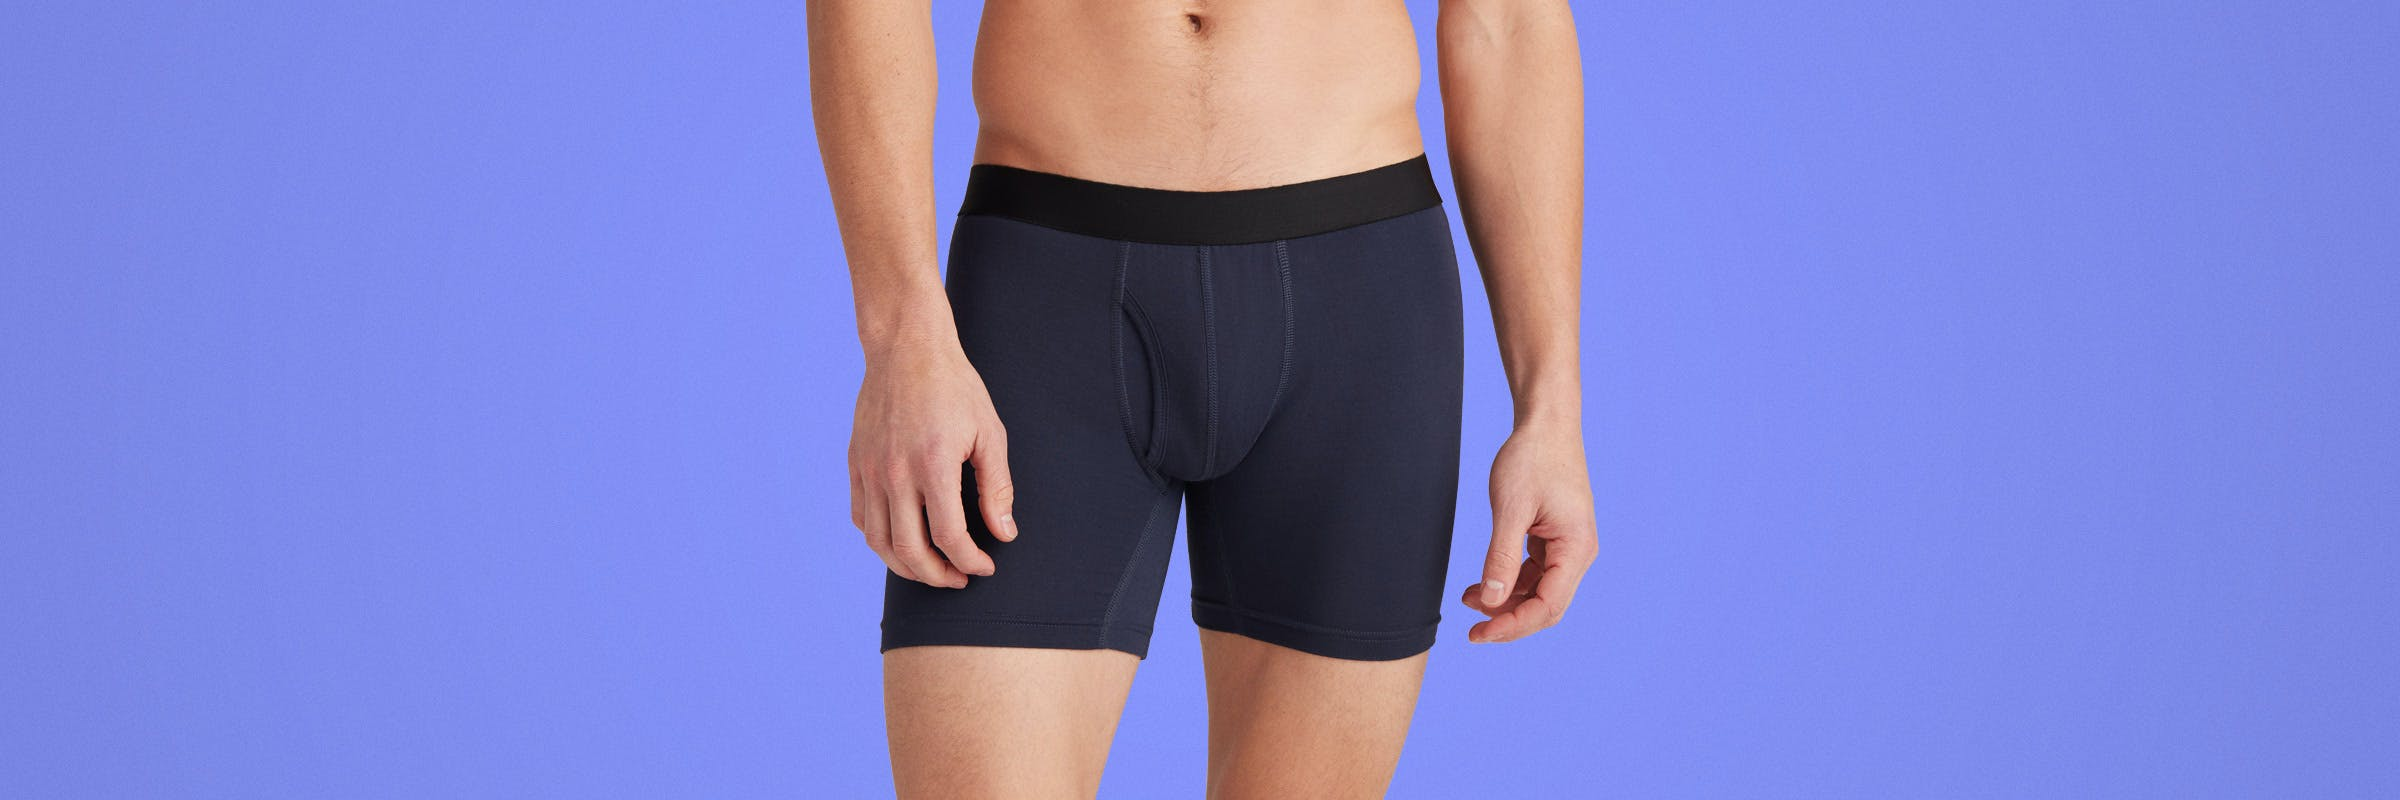 Boxer Brief w/ Fly